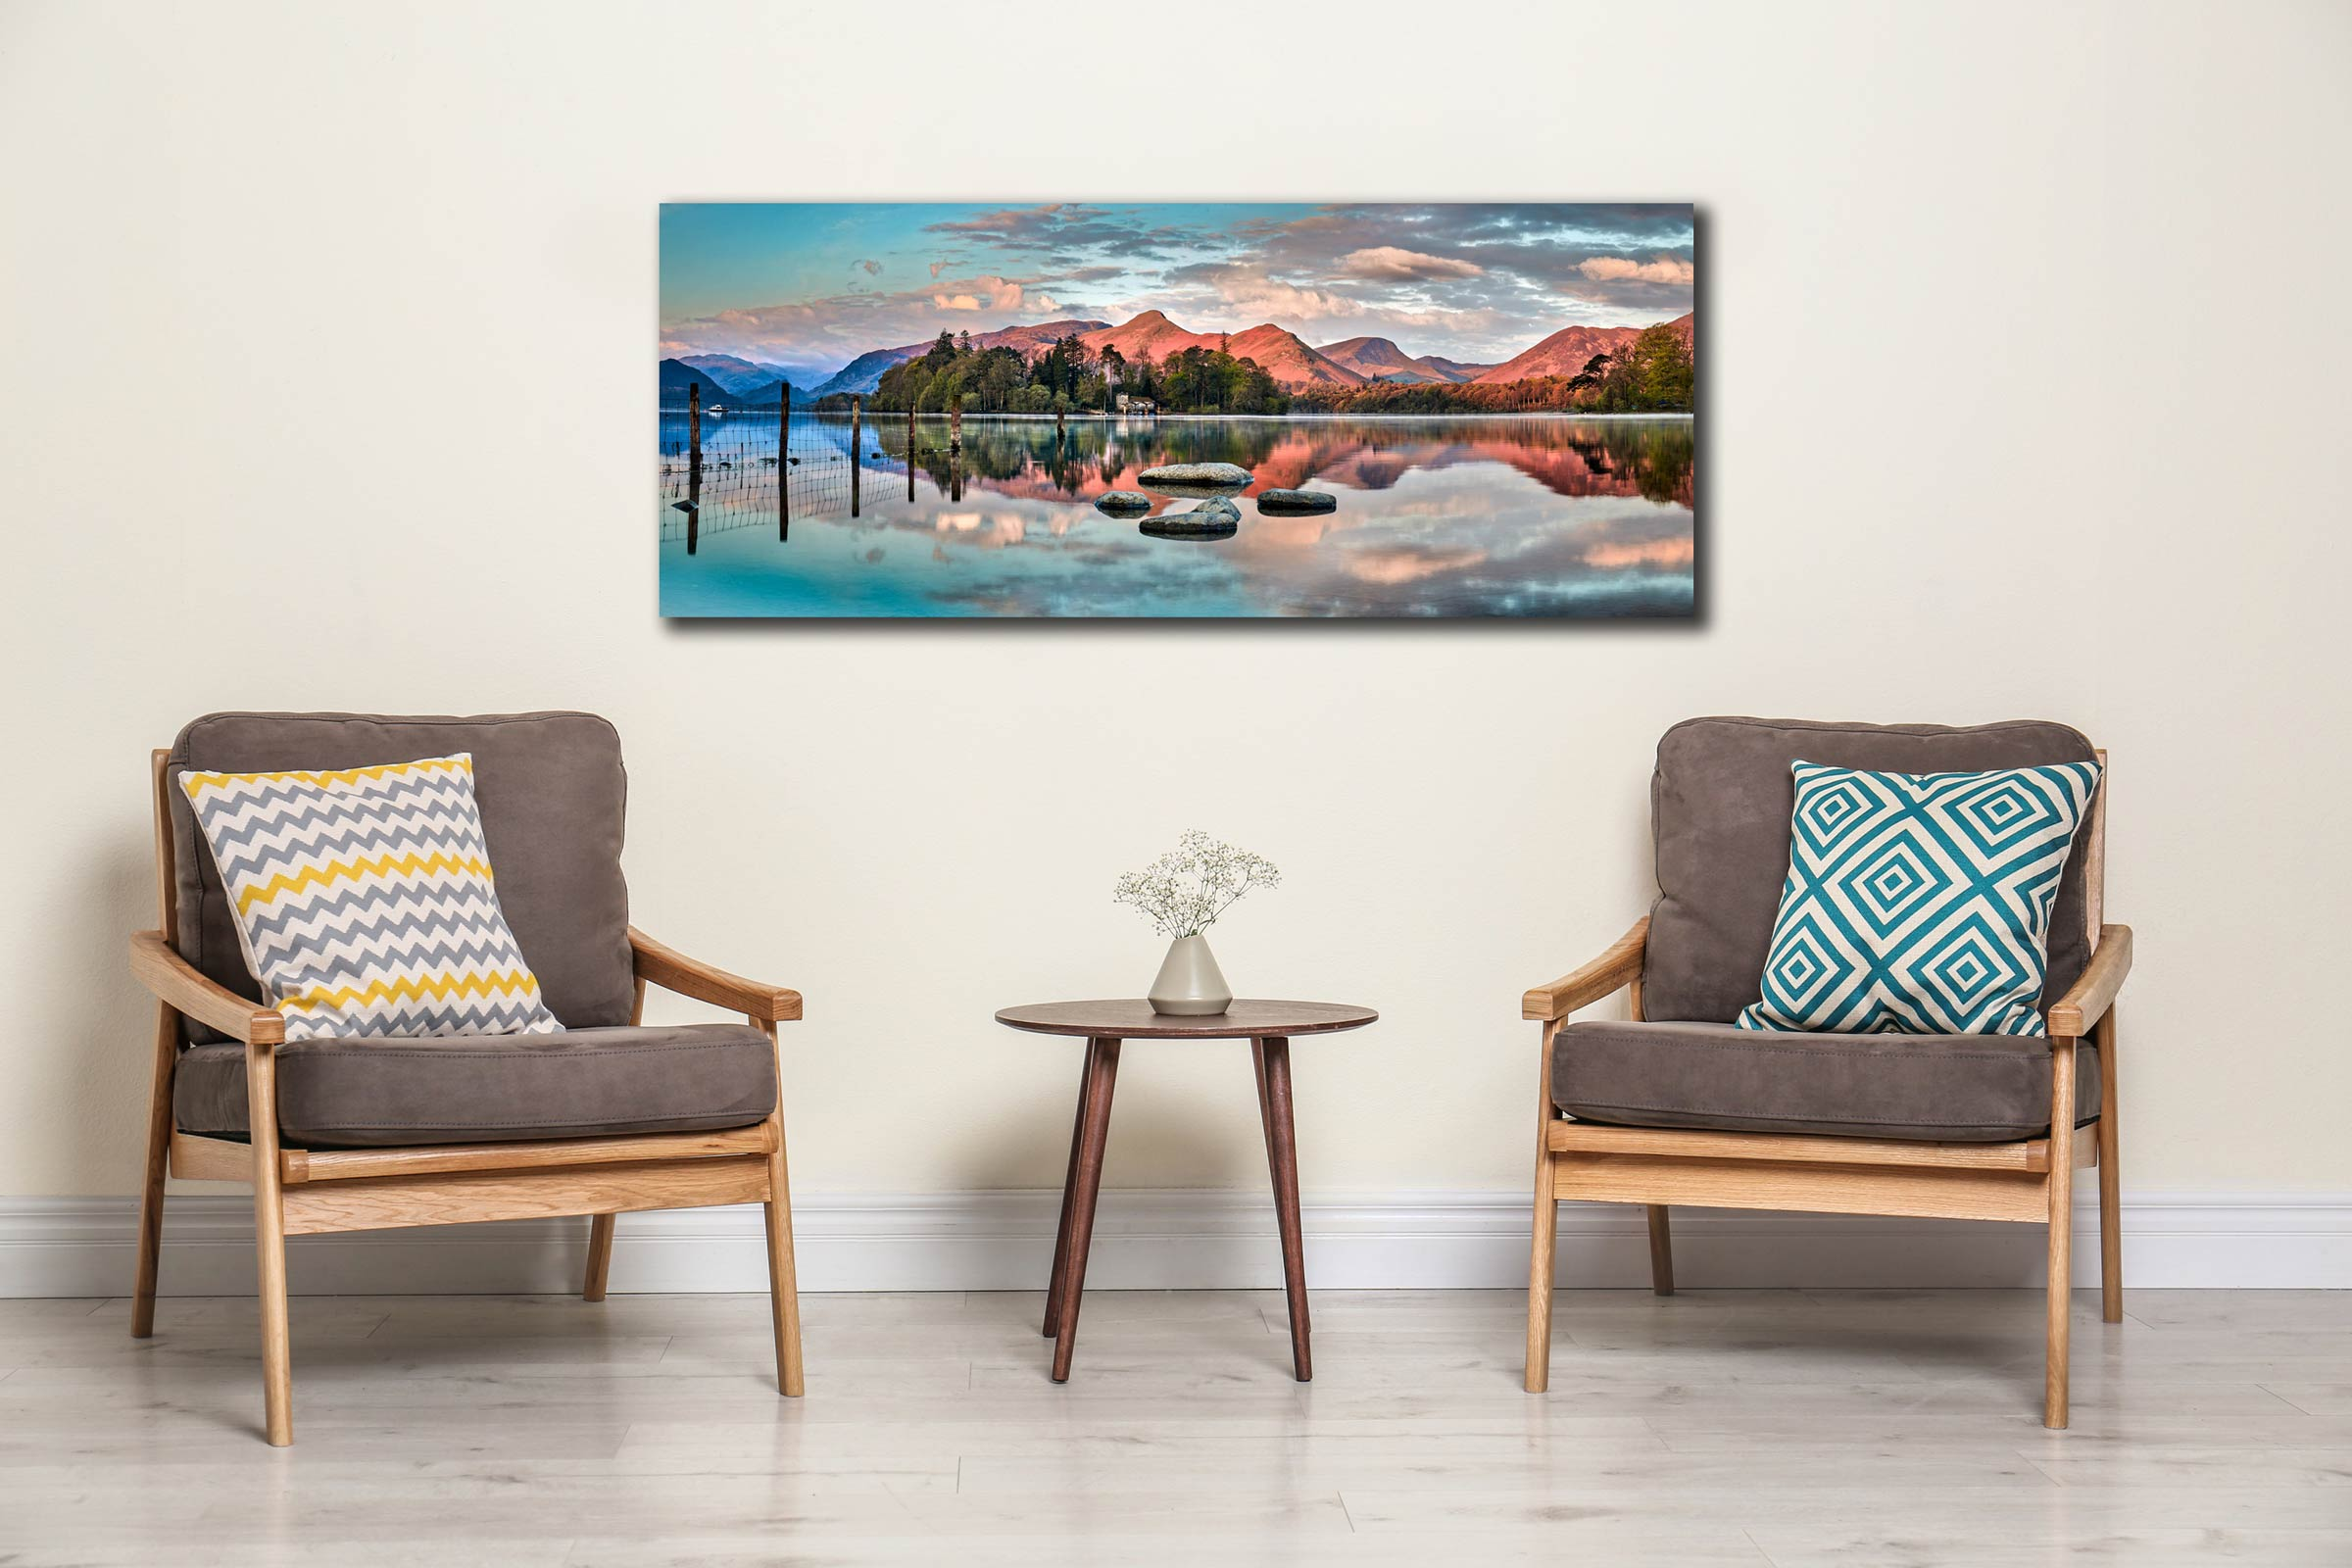 The early morning spring sunlight gives a red hue to the mountains around Derwent Water - Print Aluminium Backing With Acrylic Glazing on Wall